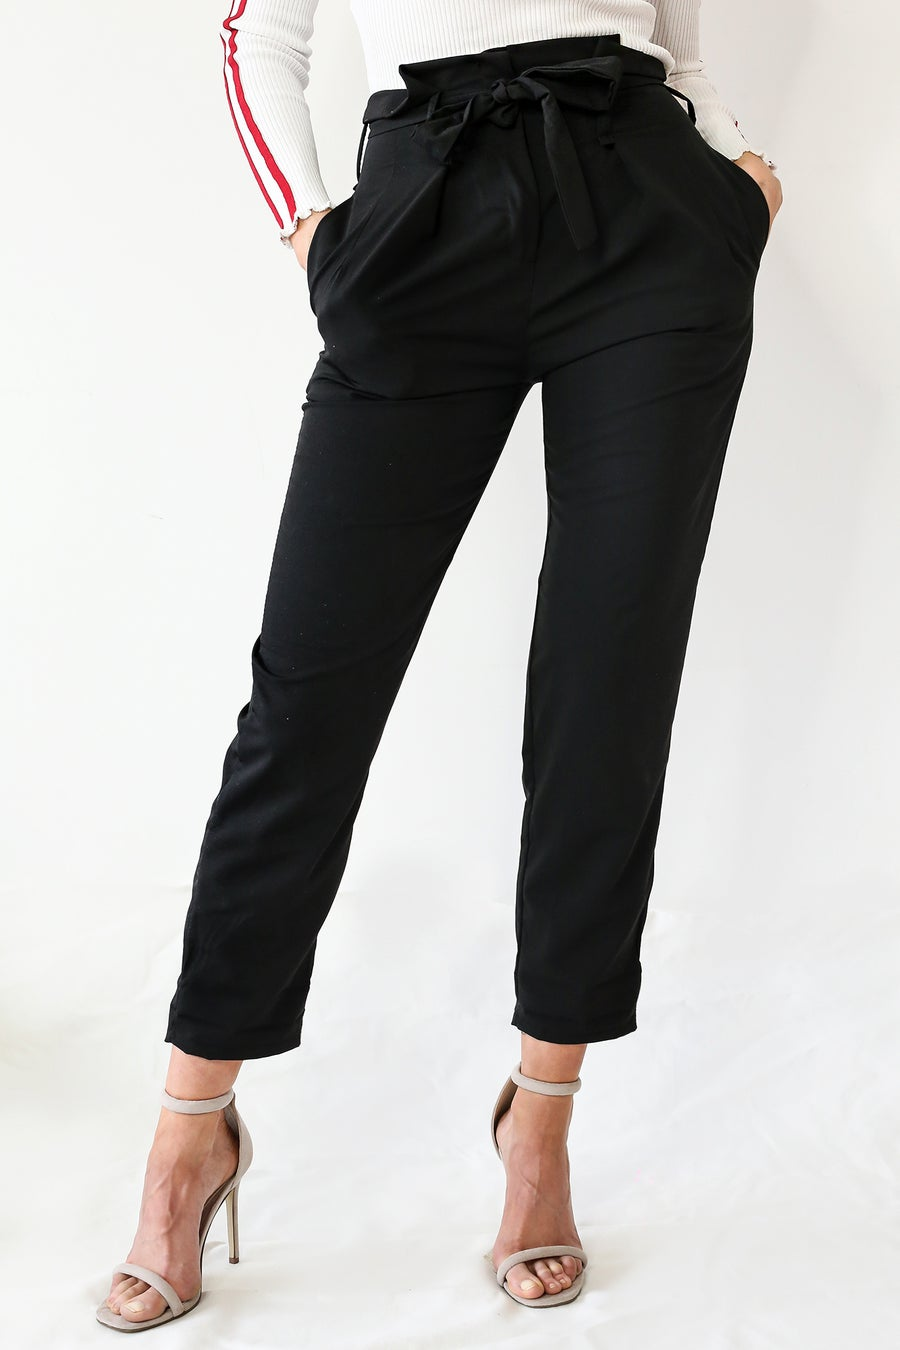 Image of groovy feeling black tapered trousers by TLO